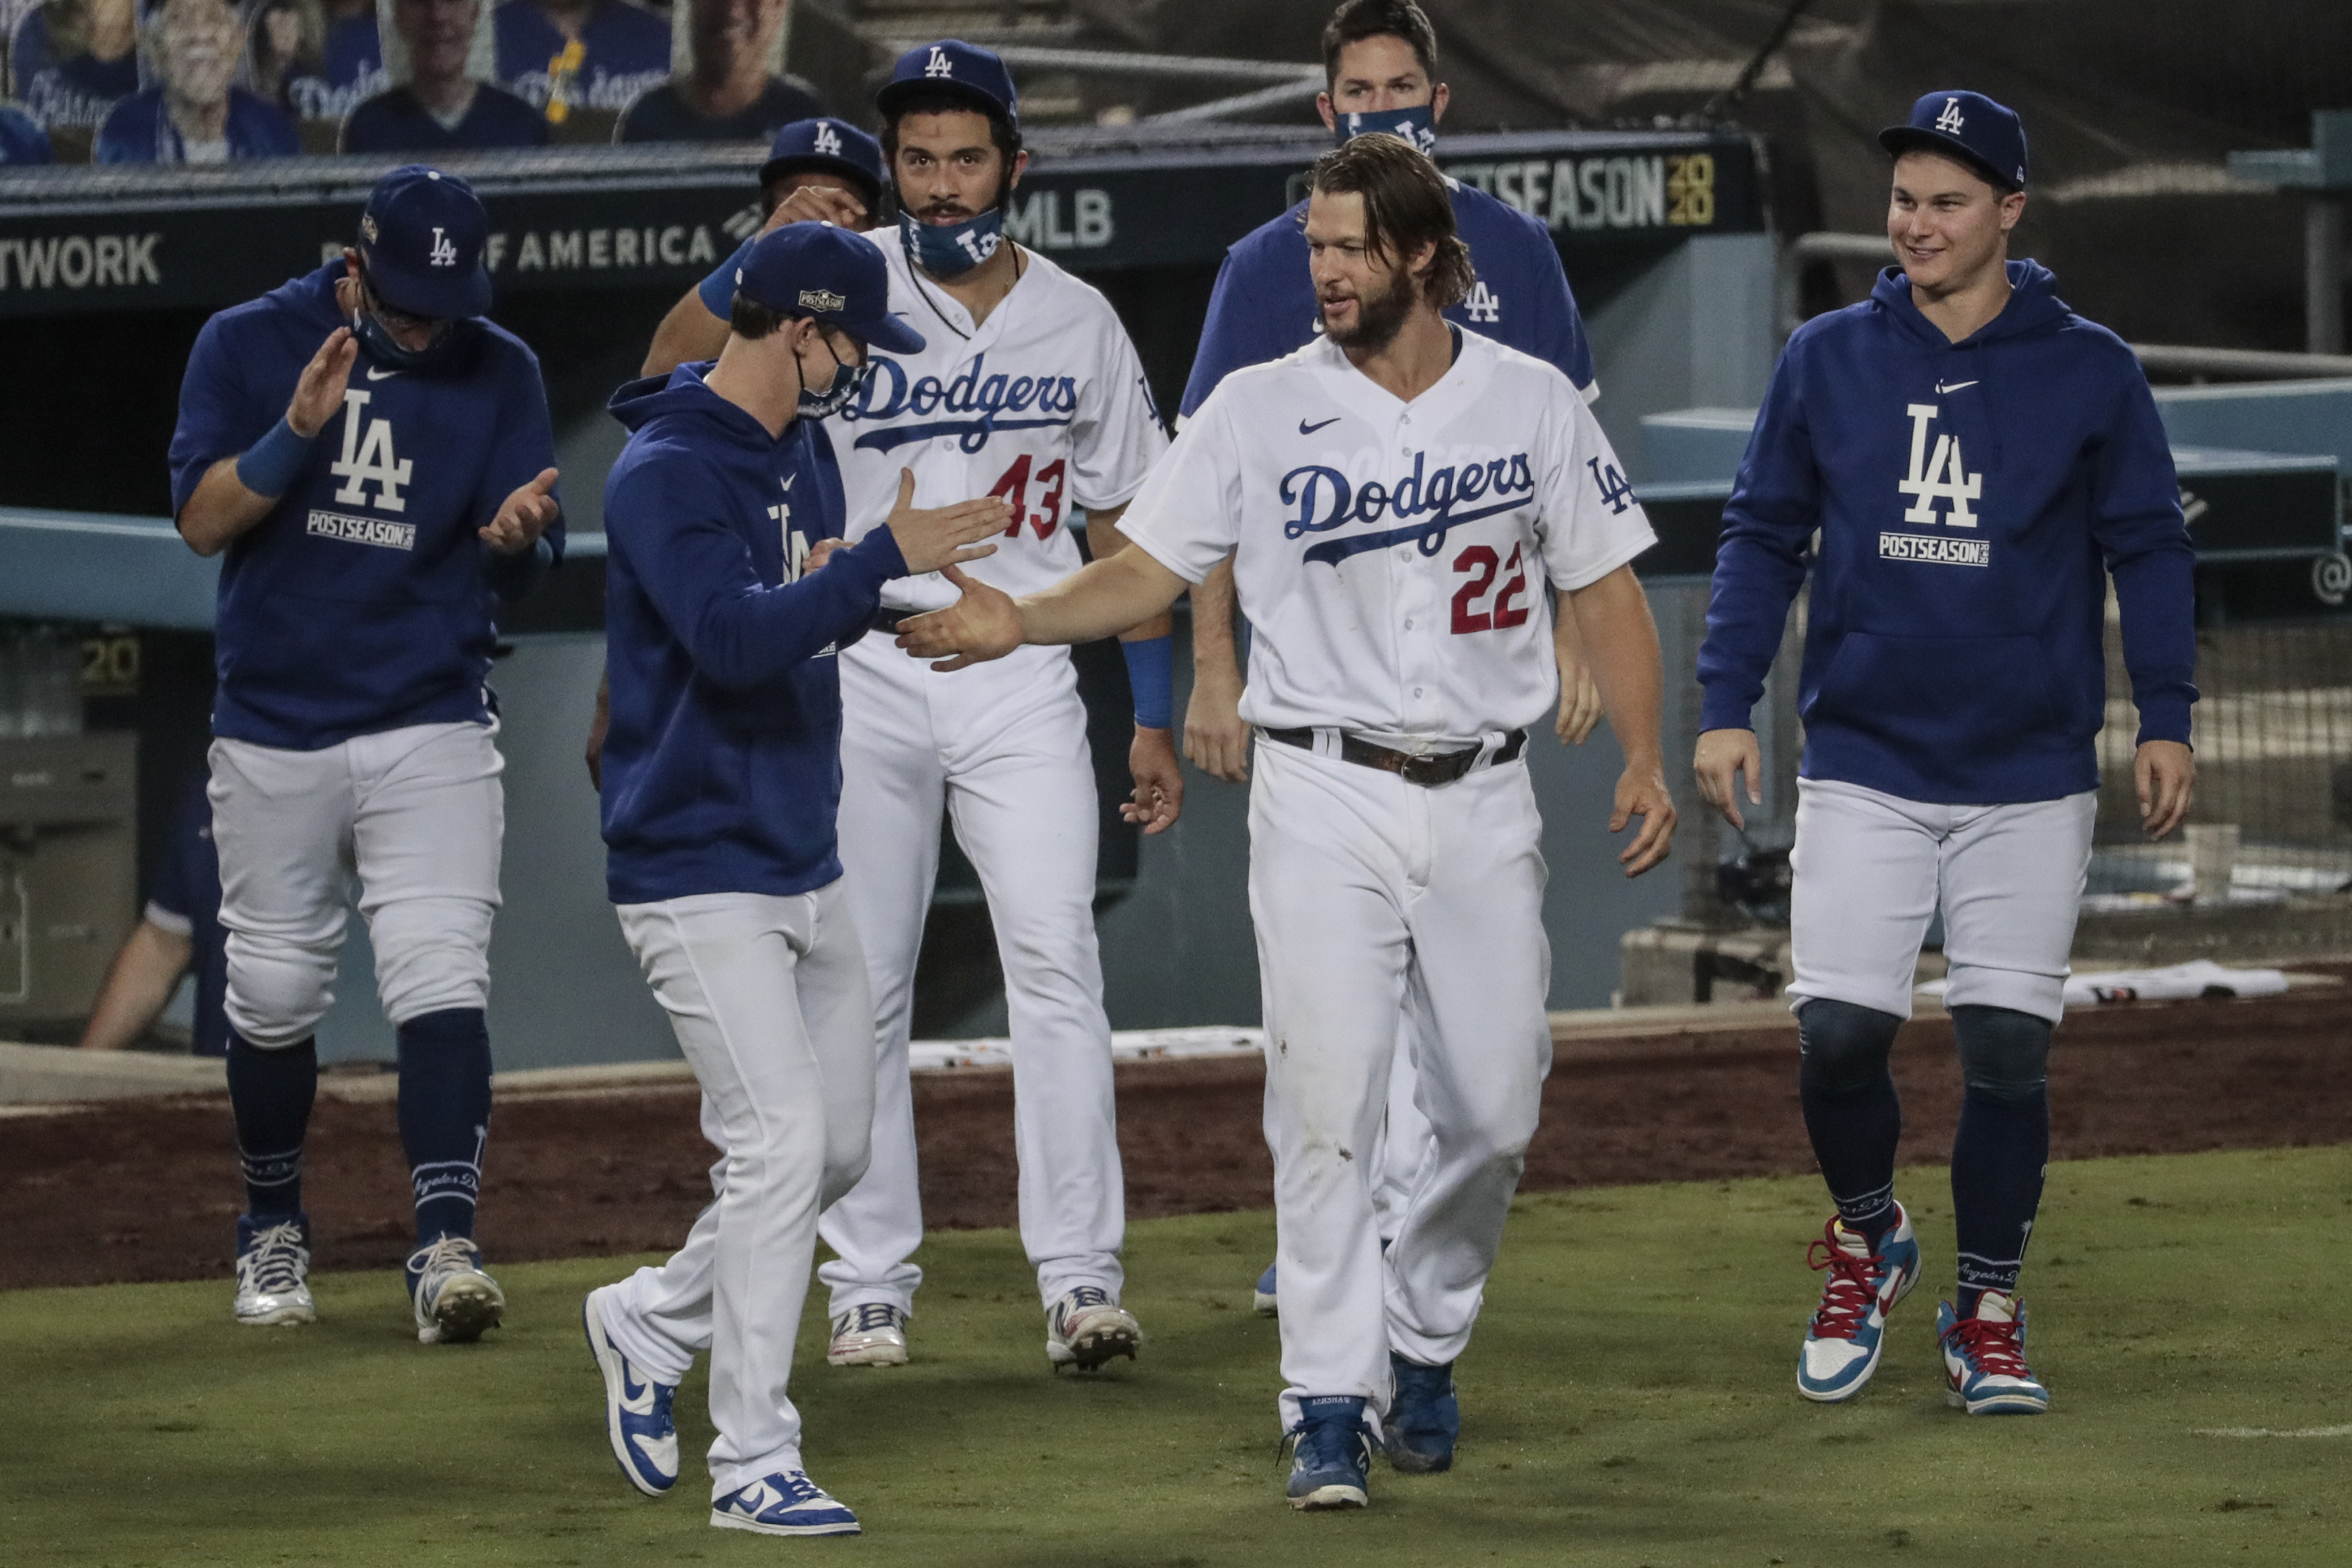 Dodgers and Brewers game one of wild card round